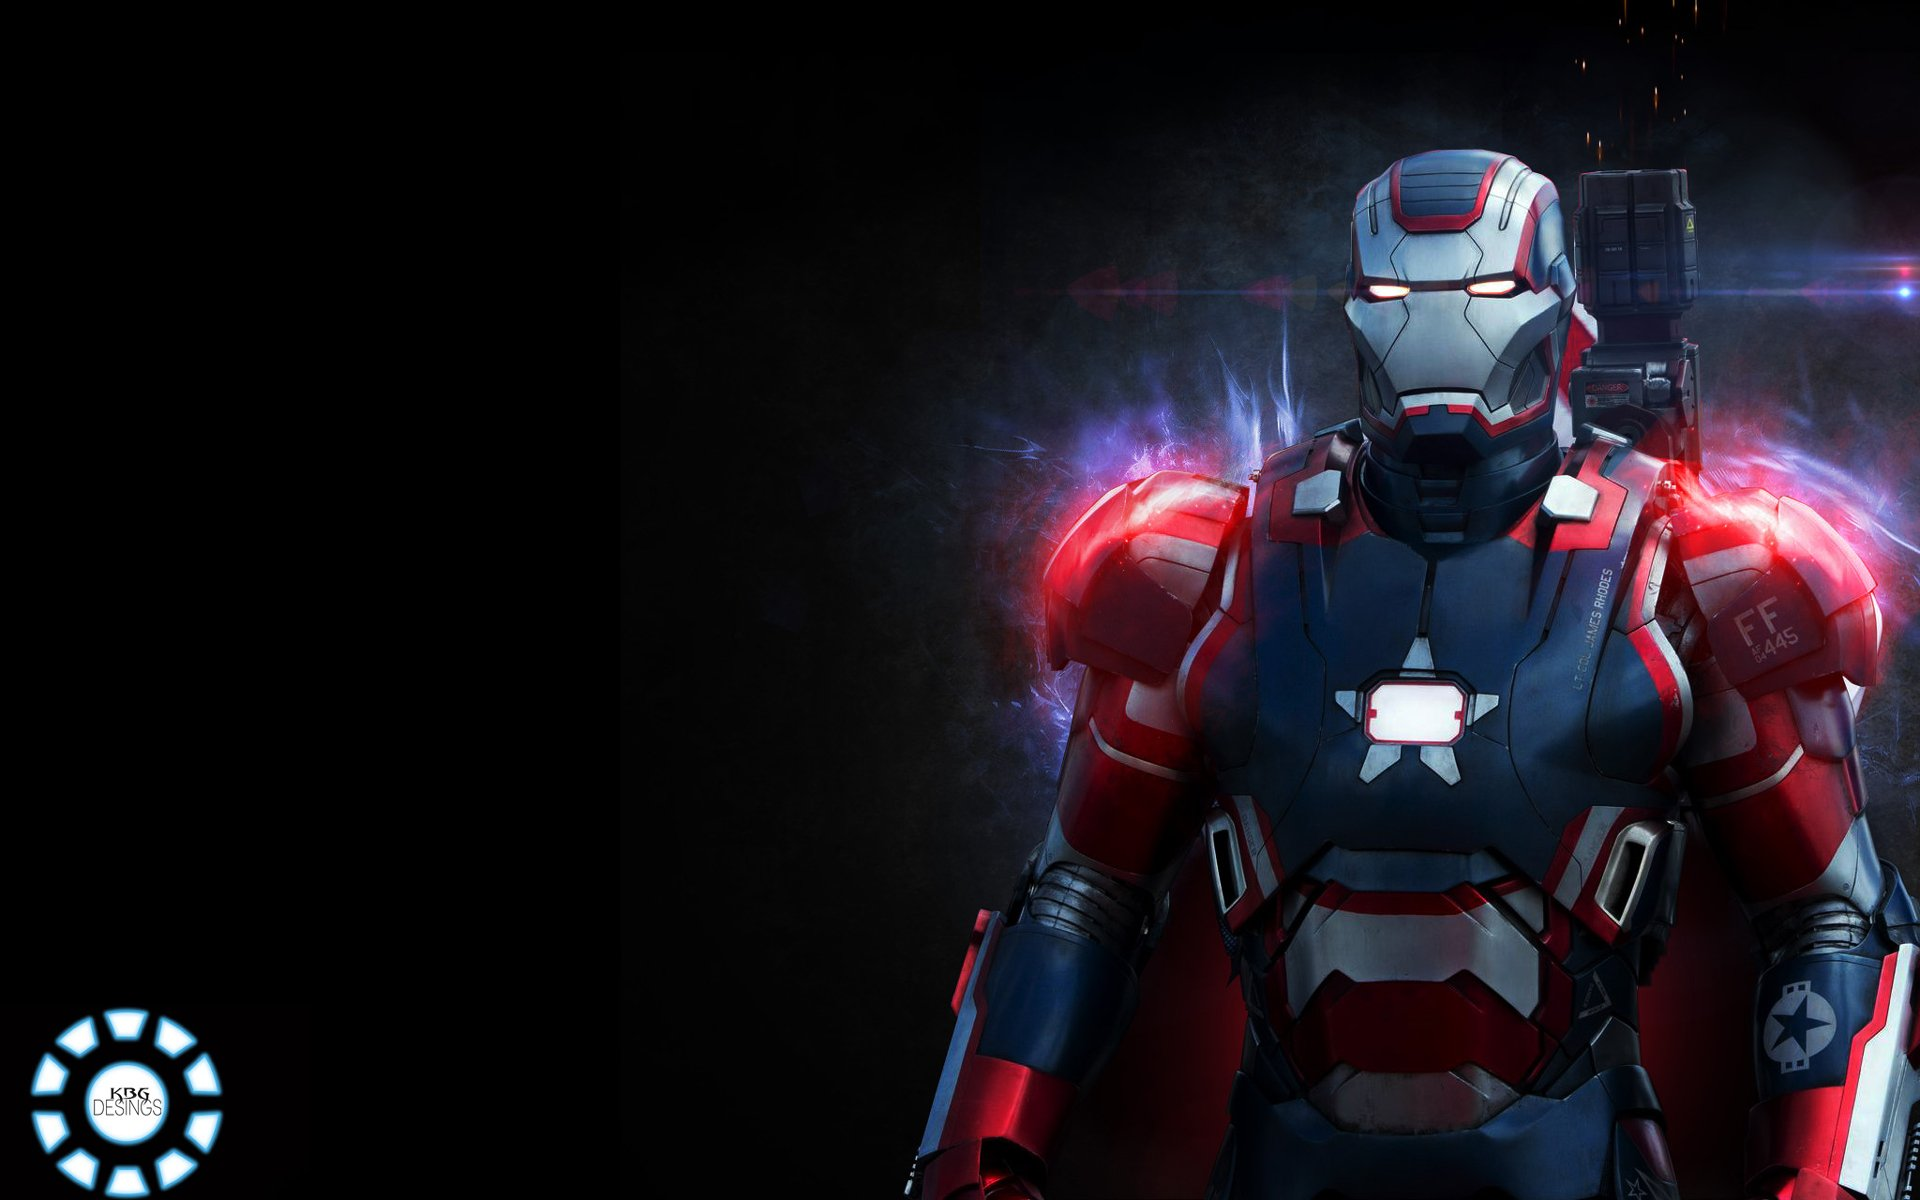 70+] Ironman Wallpaper Hd on WallpaperSafari